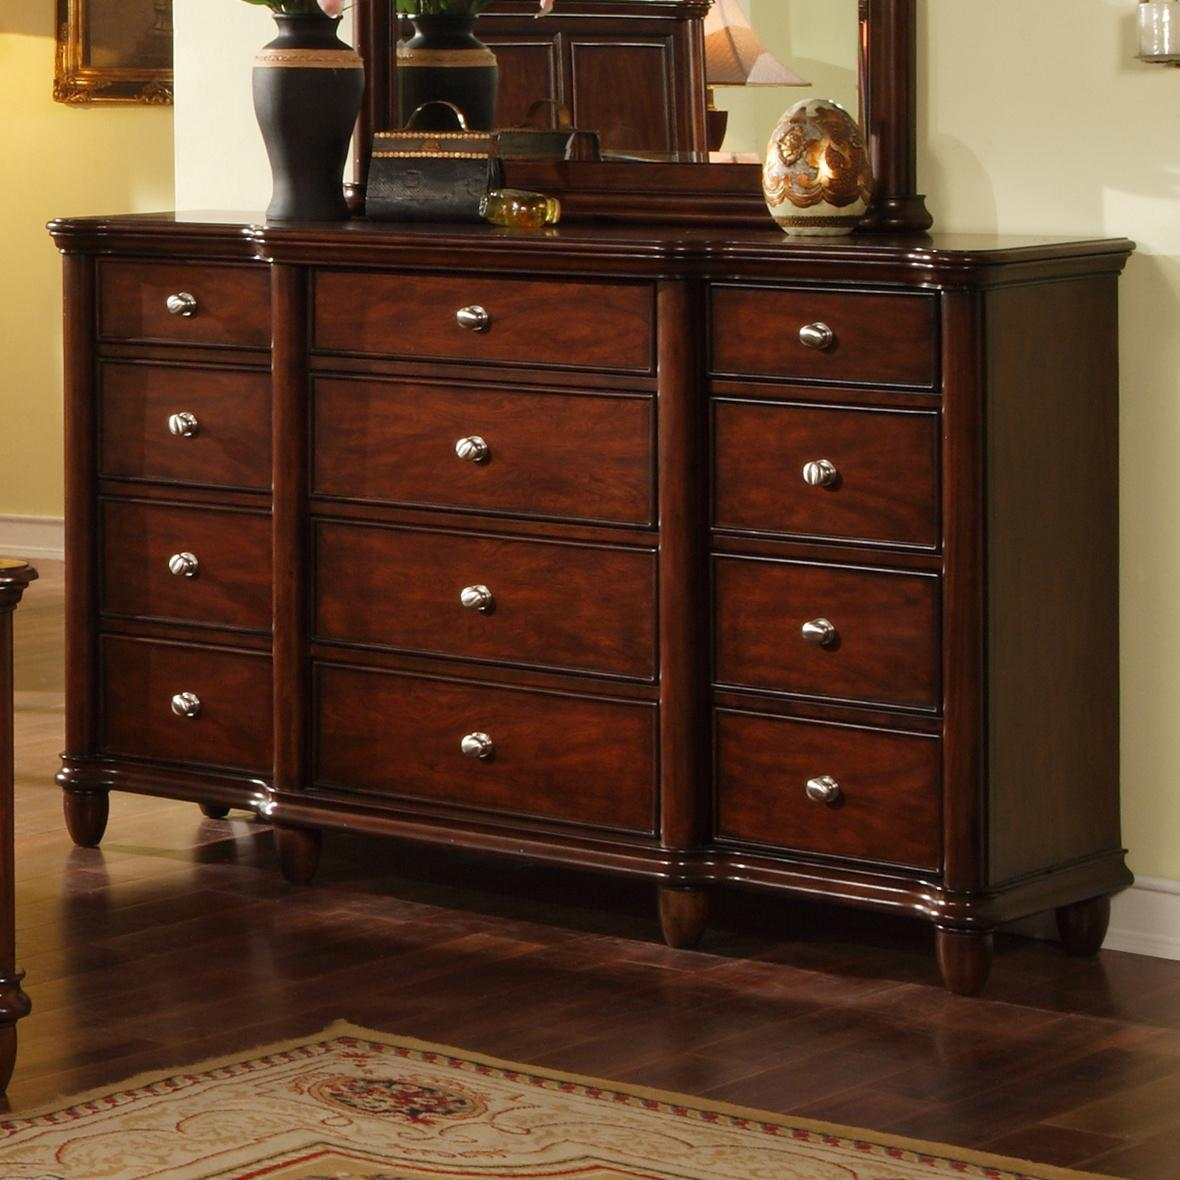 Morris Home Furnishings Lockport Lockport Dresser - Item Number: HM100DR